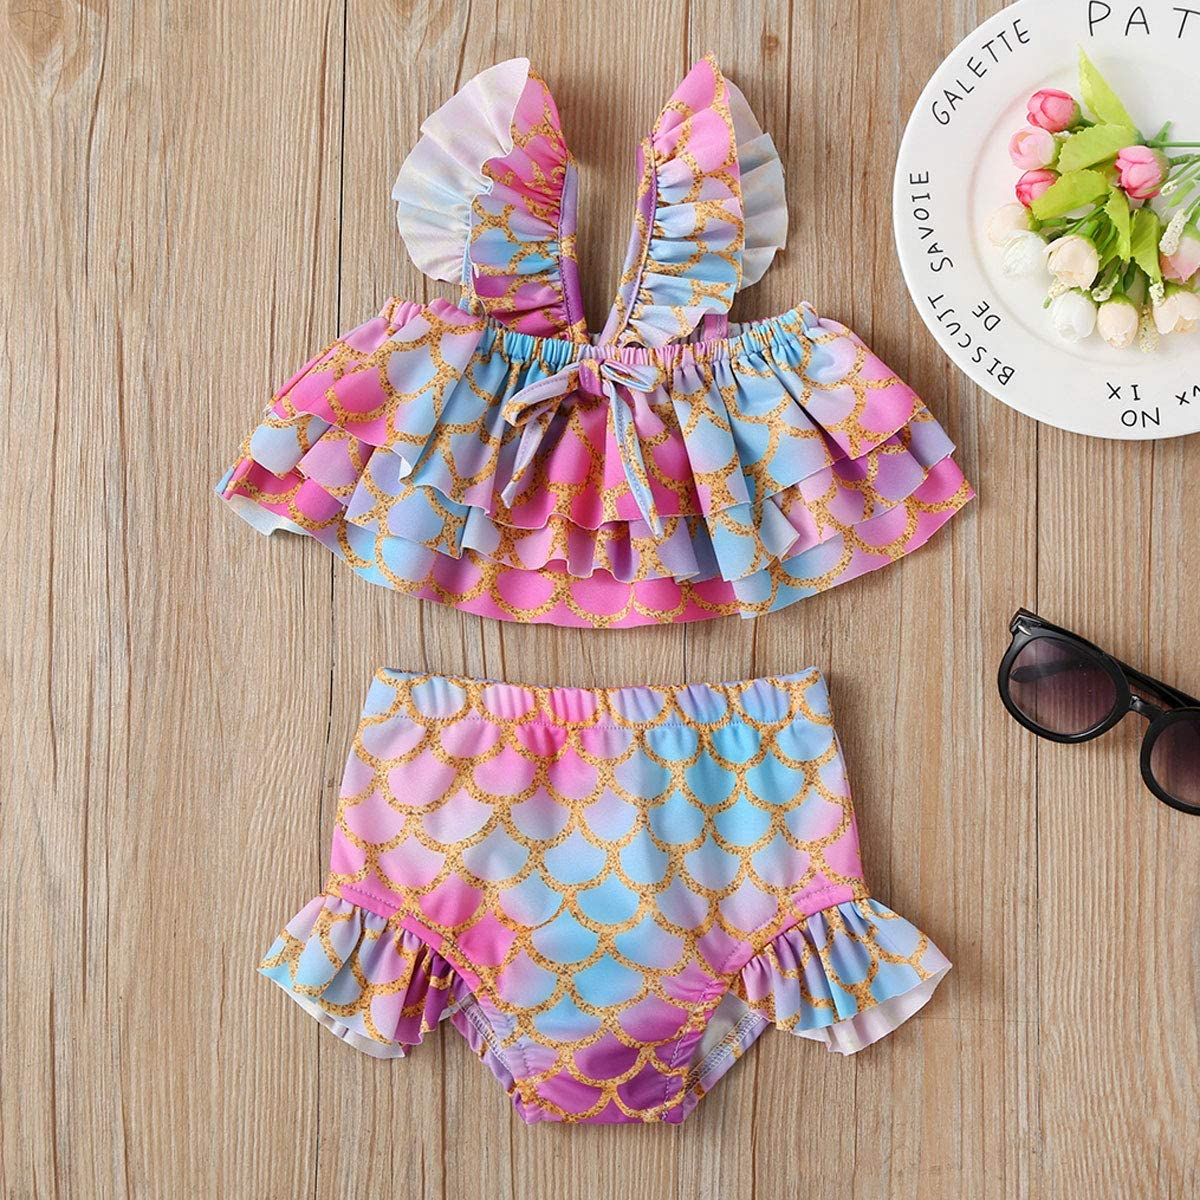 Baby Girl Bikini Striped Beach Swimsuit Ruffles Bathing Suit Adjustable Swimwear 2 Pcs Set